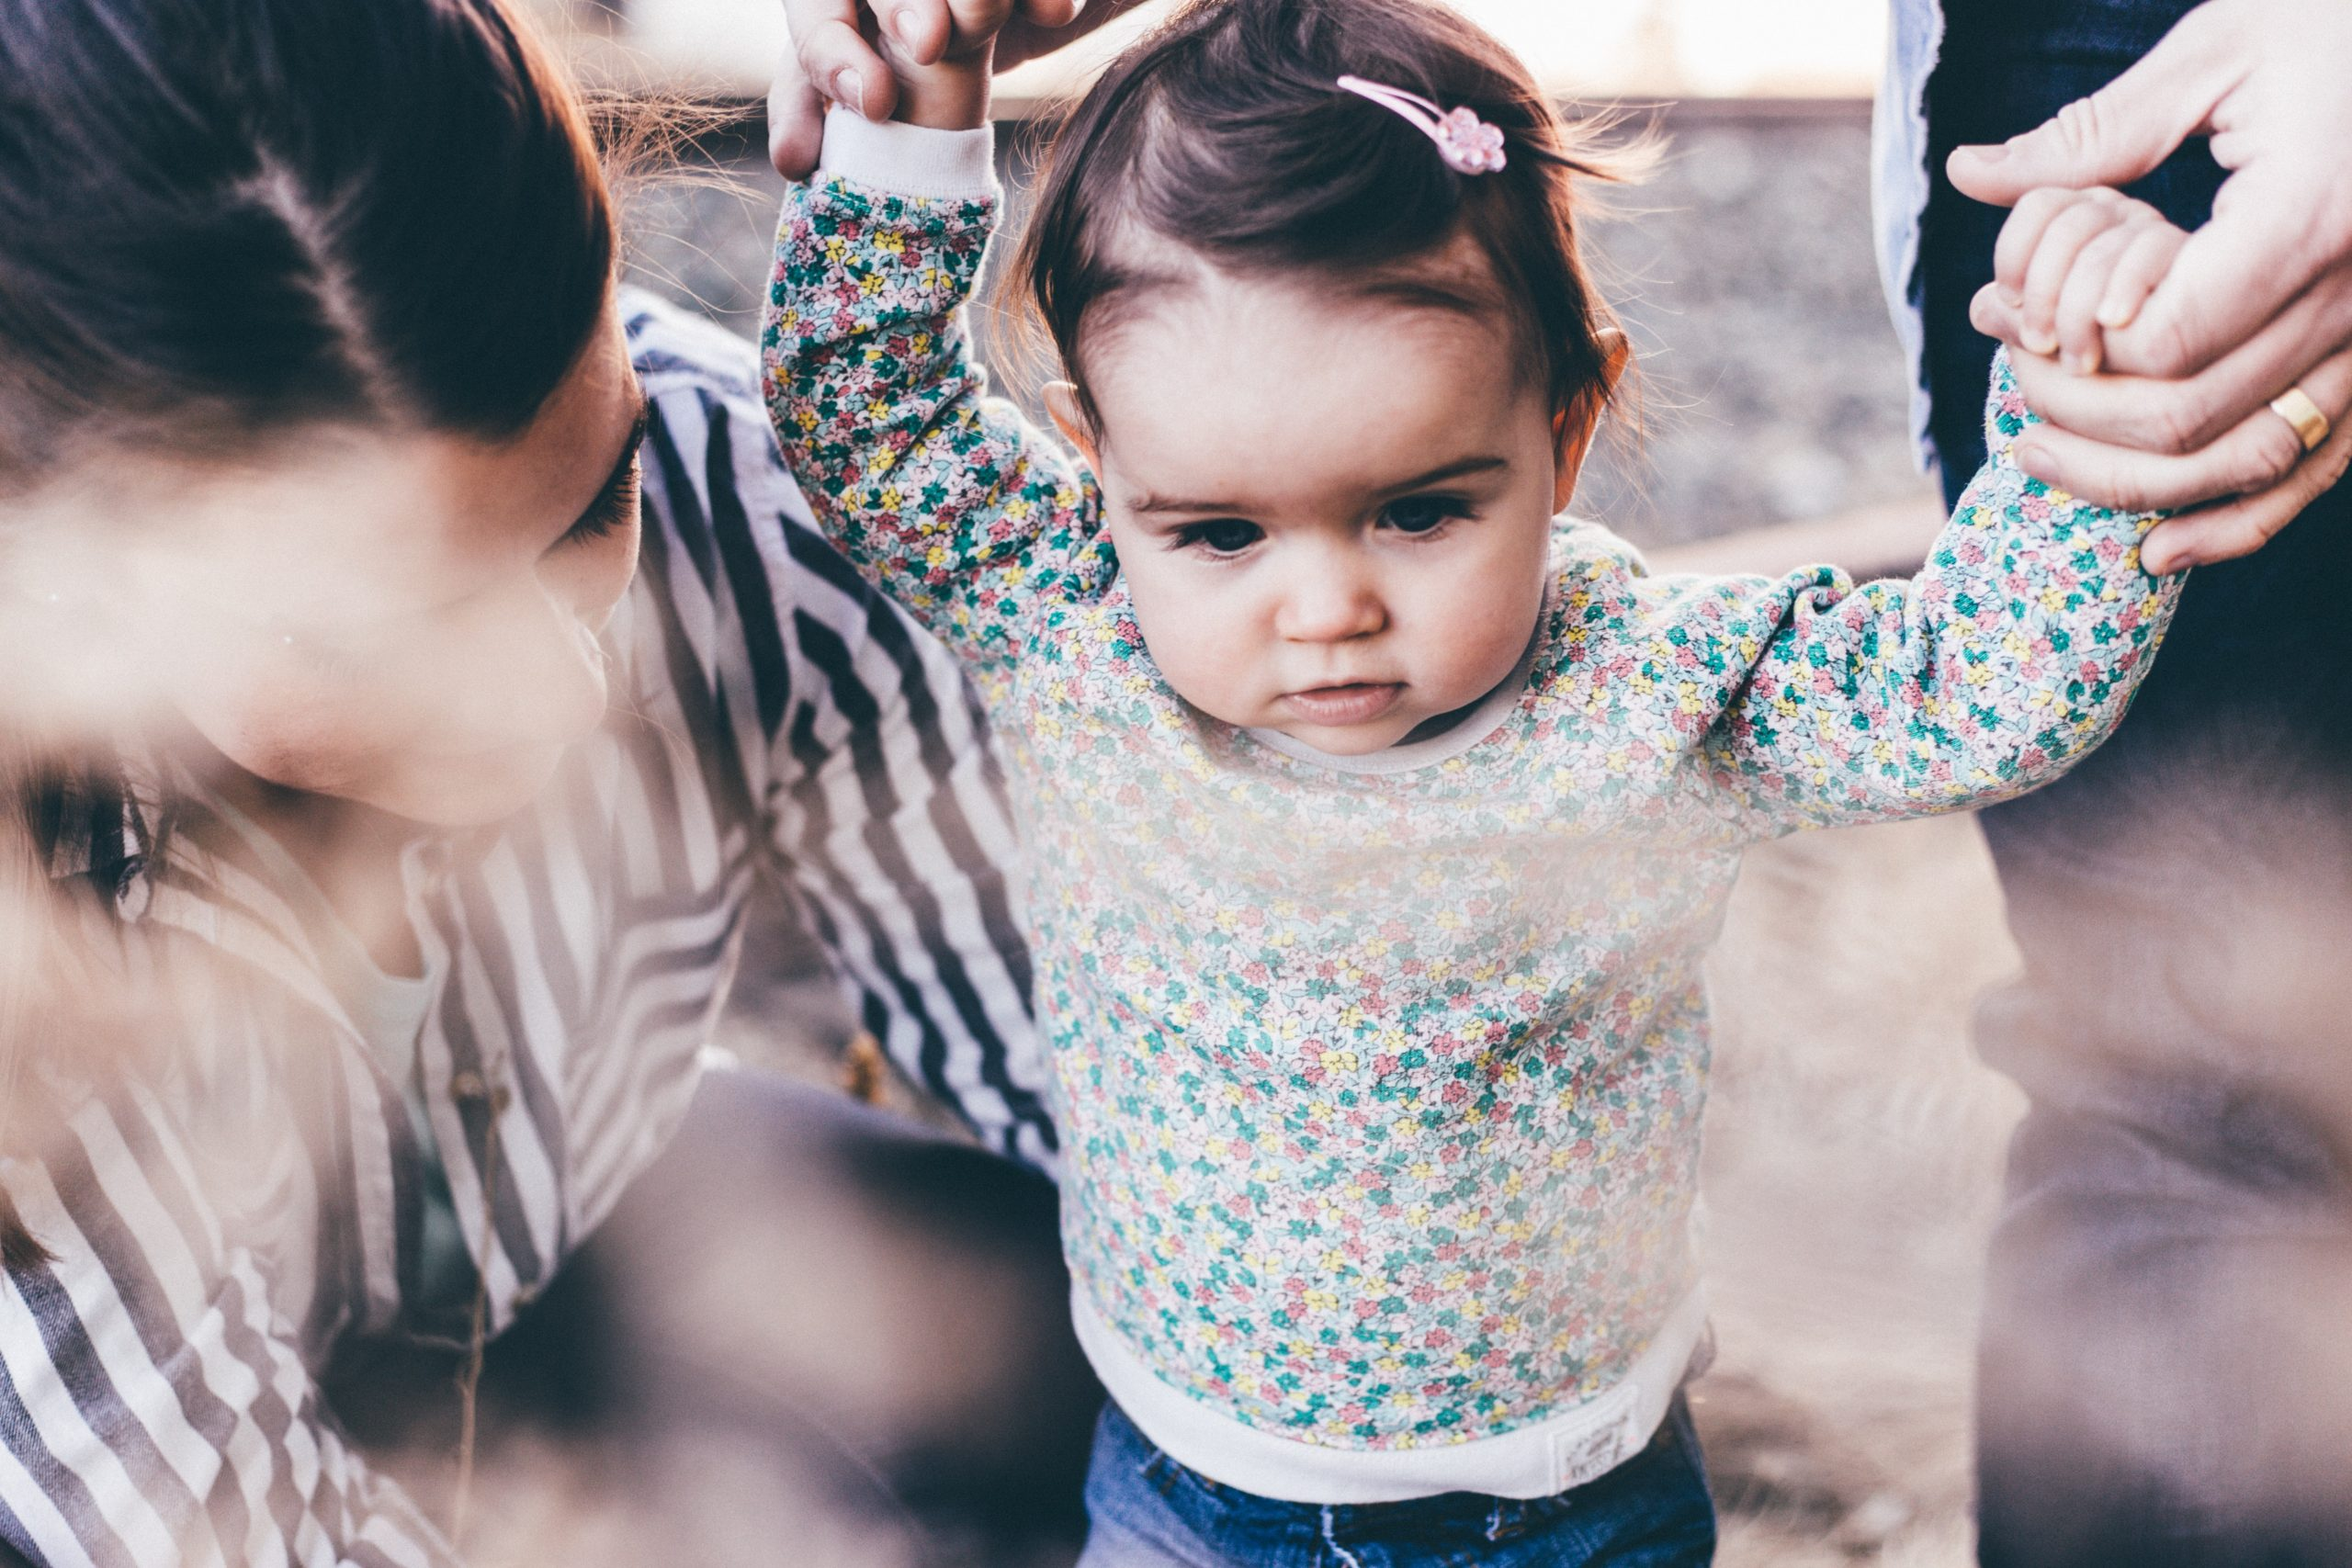 There's not such thing as a perfect parent